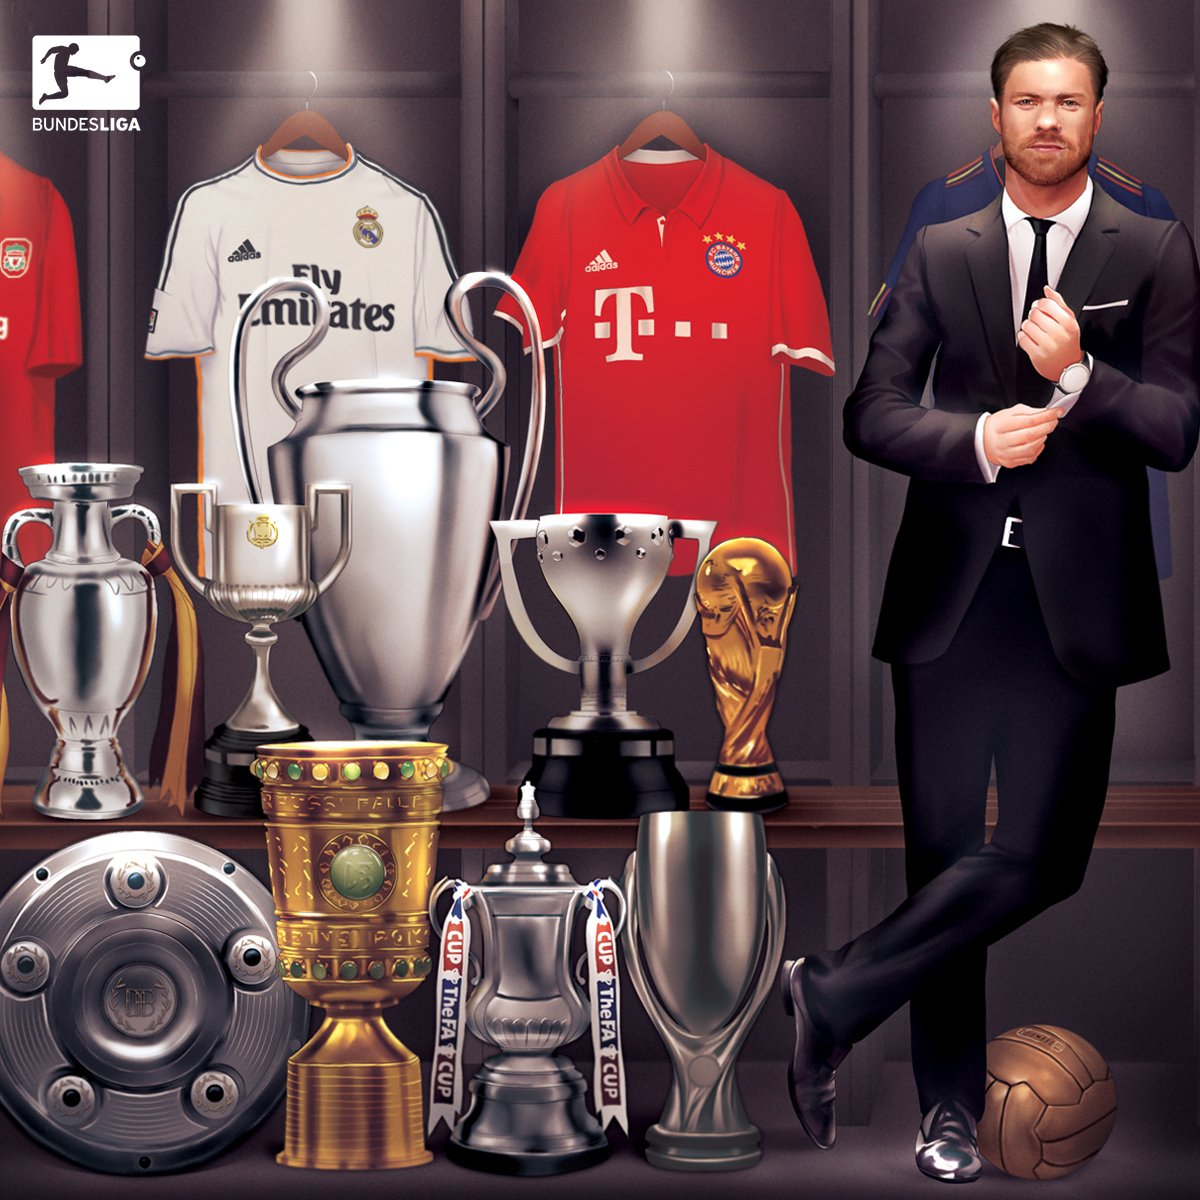 And this might just be the coolest graphic I&#39;ve ever seen #GraciasXabi #Bundesliga <br>http://pic.twitter.com/jipXYZcINu